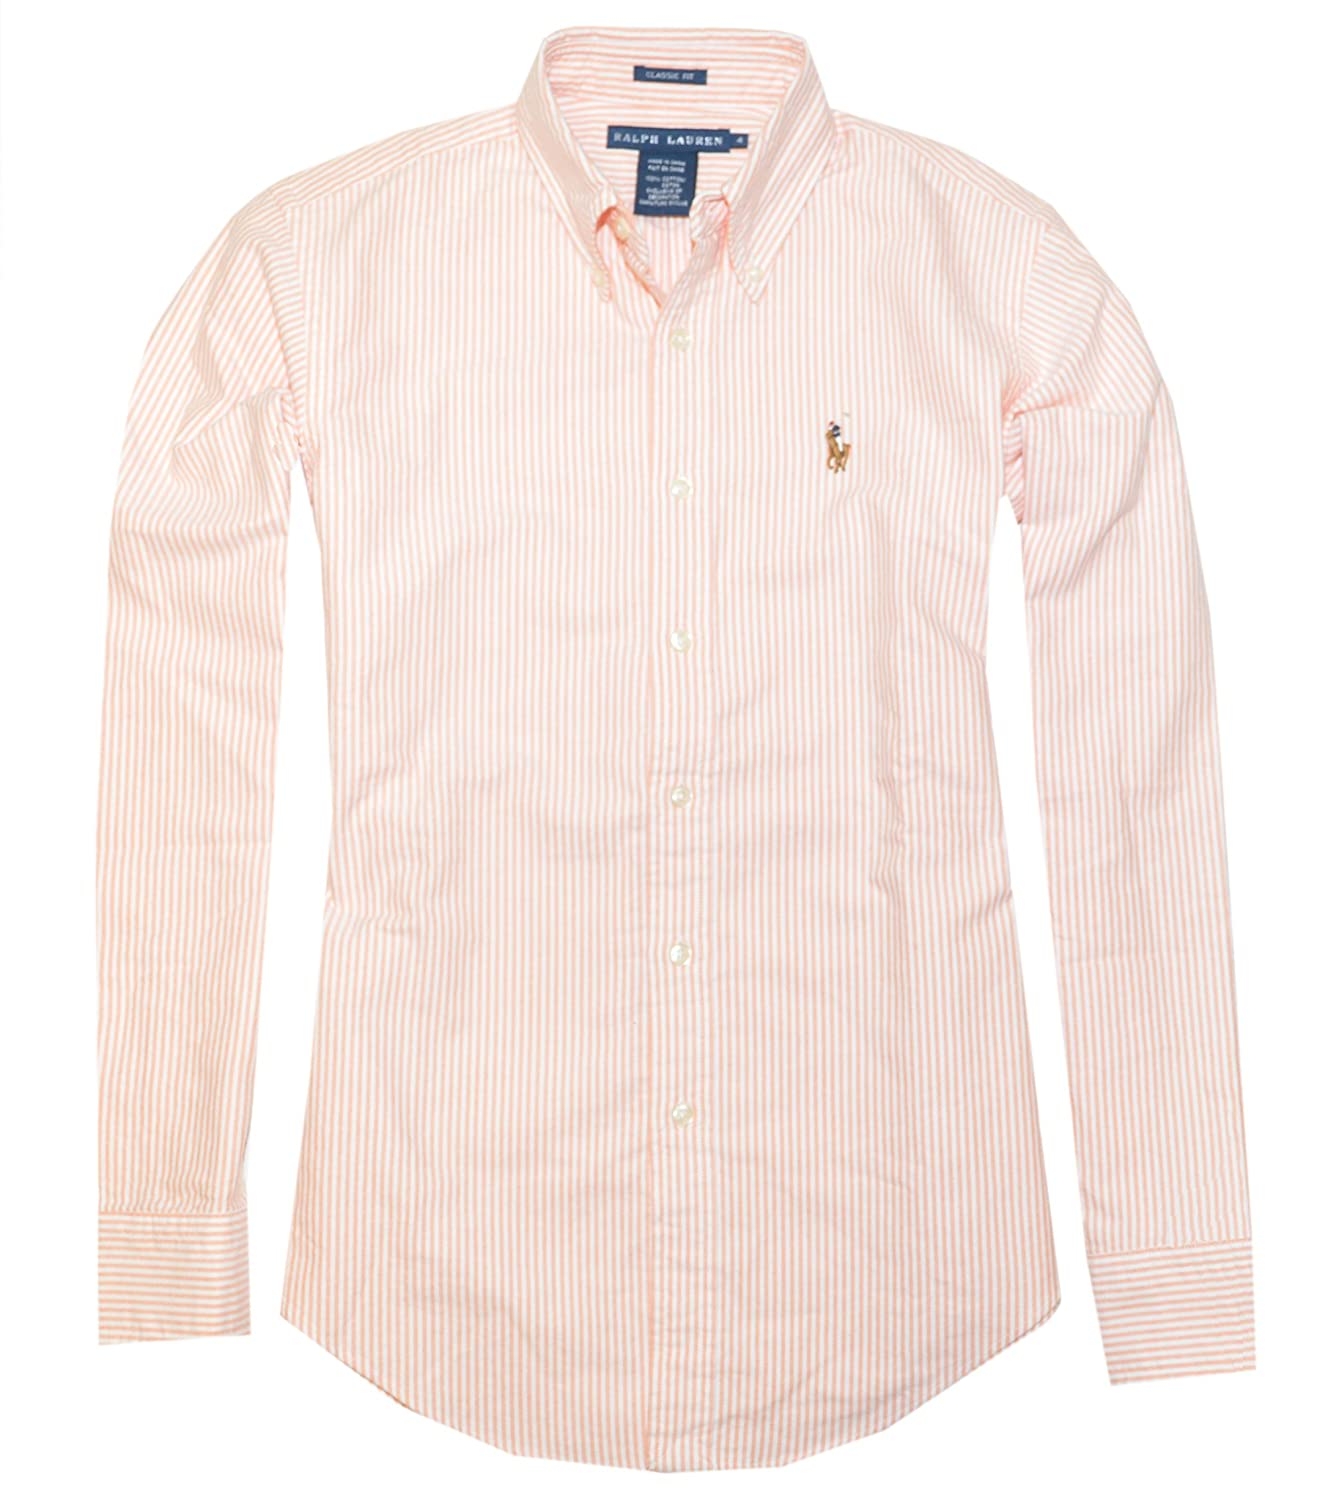 White Ralph Lauren Polo Shirt Womens Images